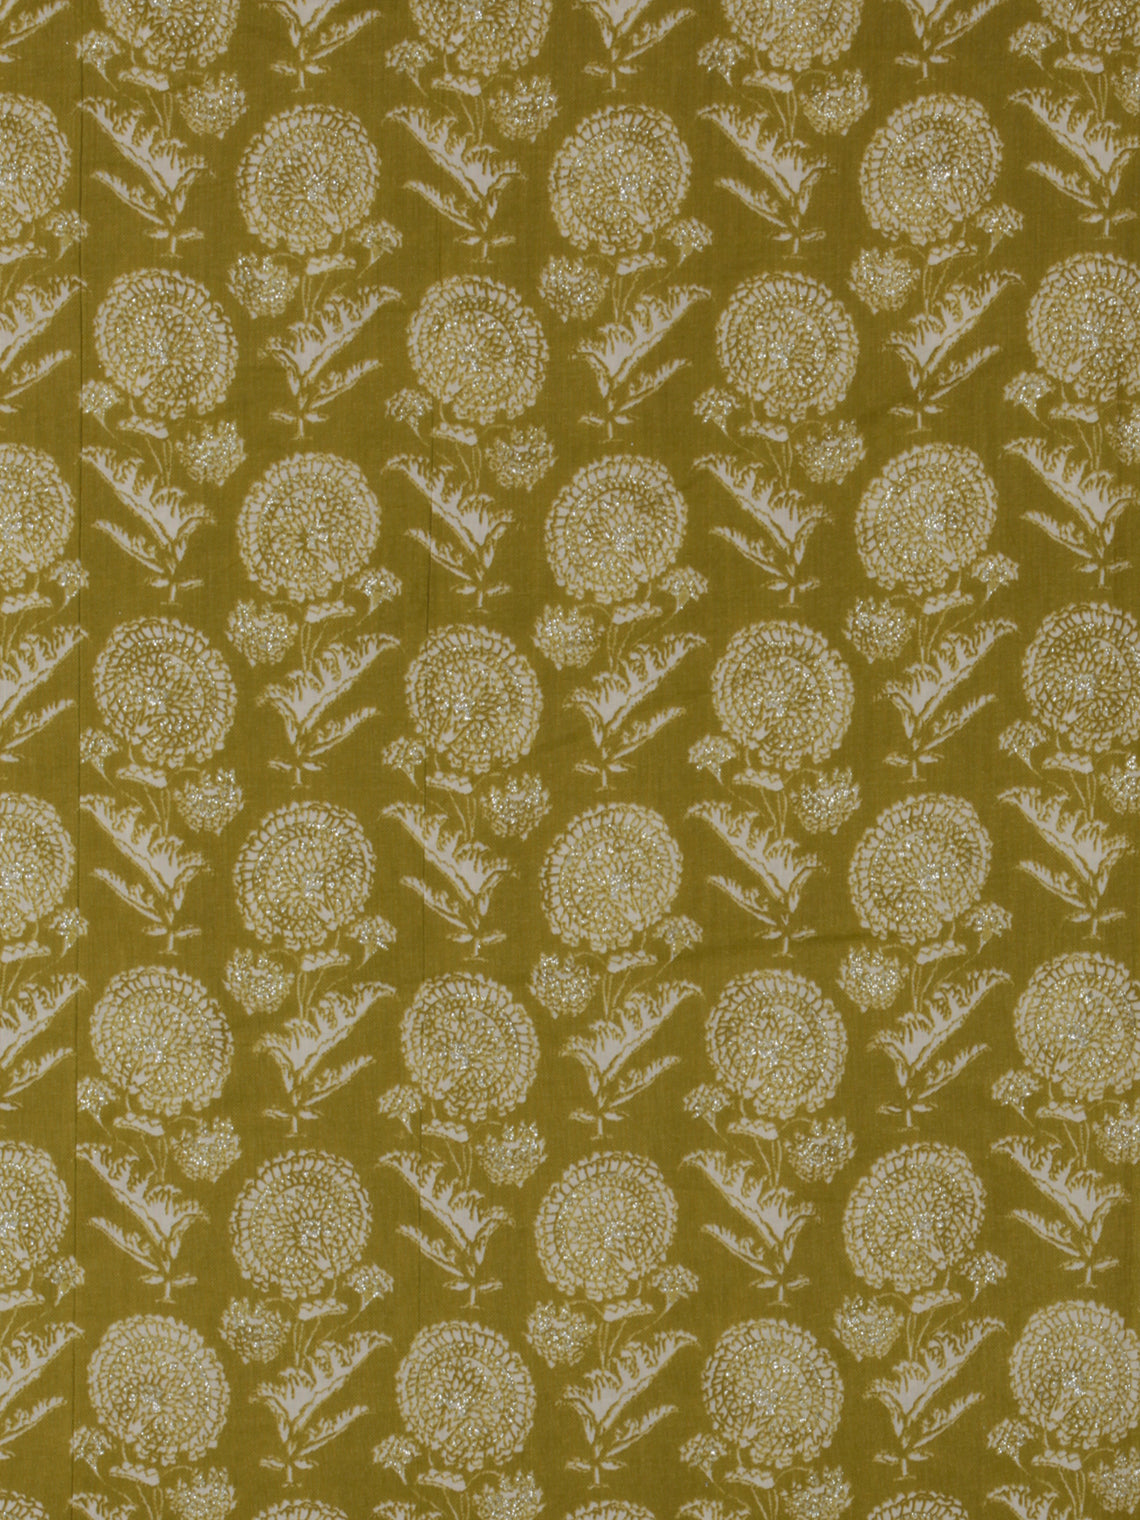 Olive Green OffWhite silver Block Printed Cotton Fabric Per Meter - F001F2395